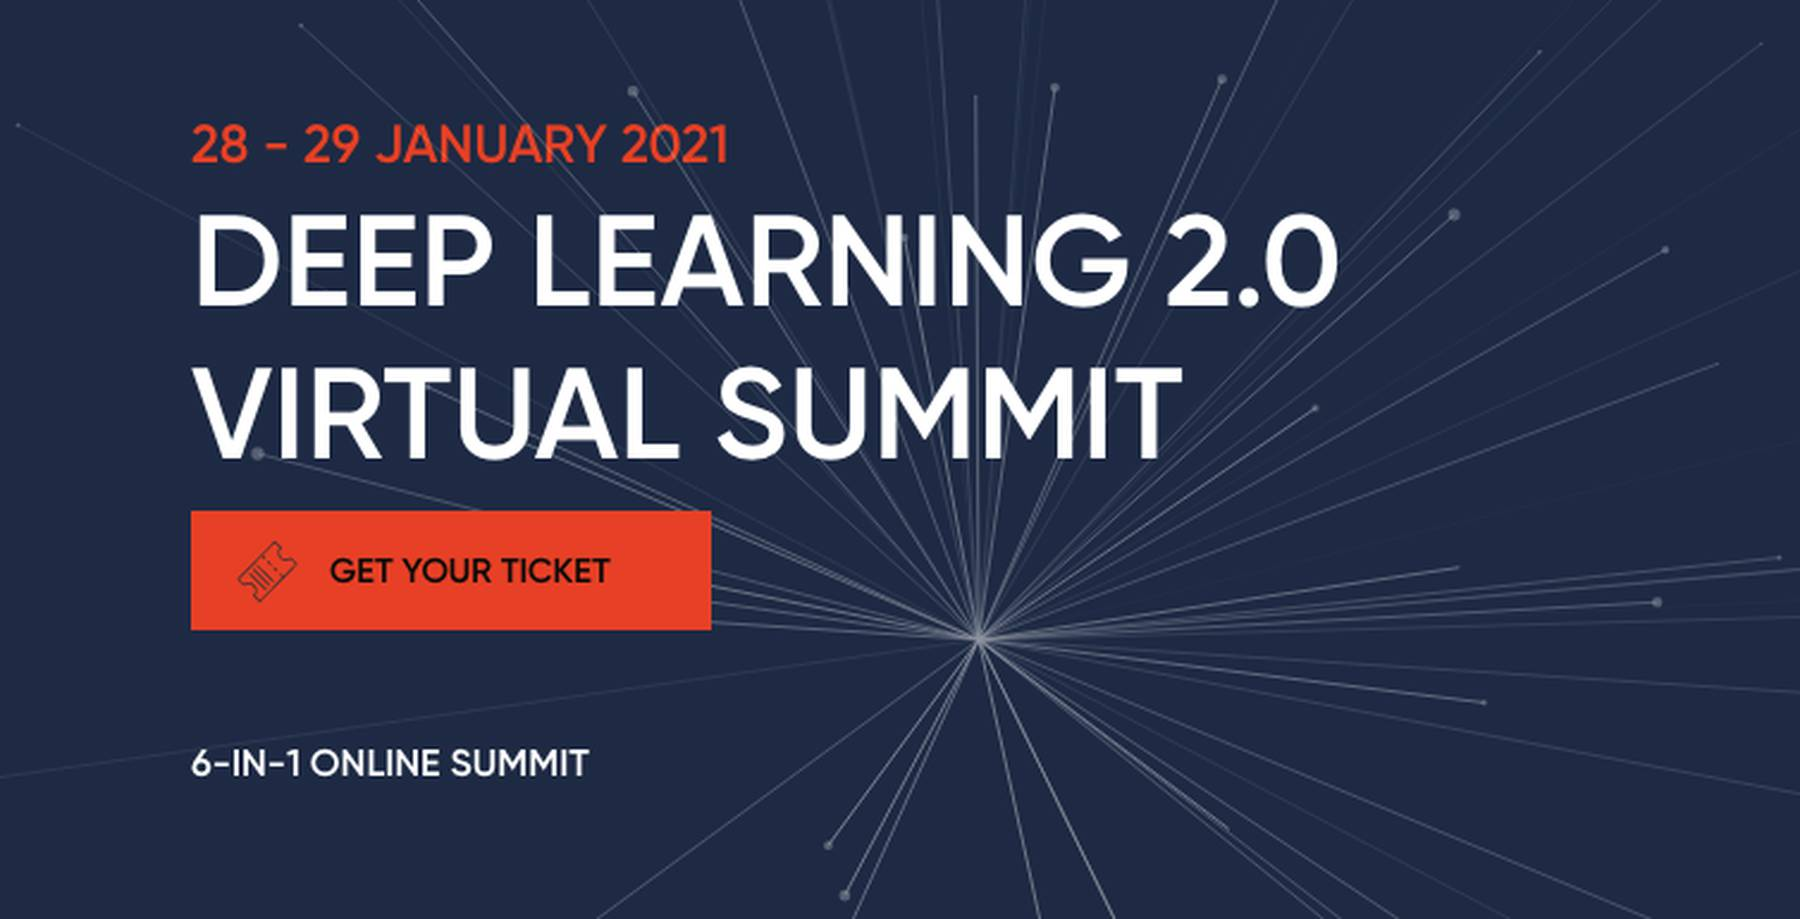 Deep Learning 2.0 Virtual Summit 2021